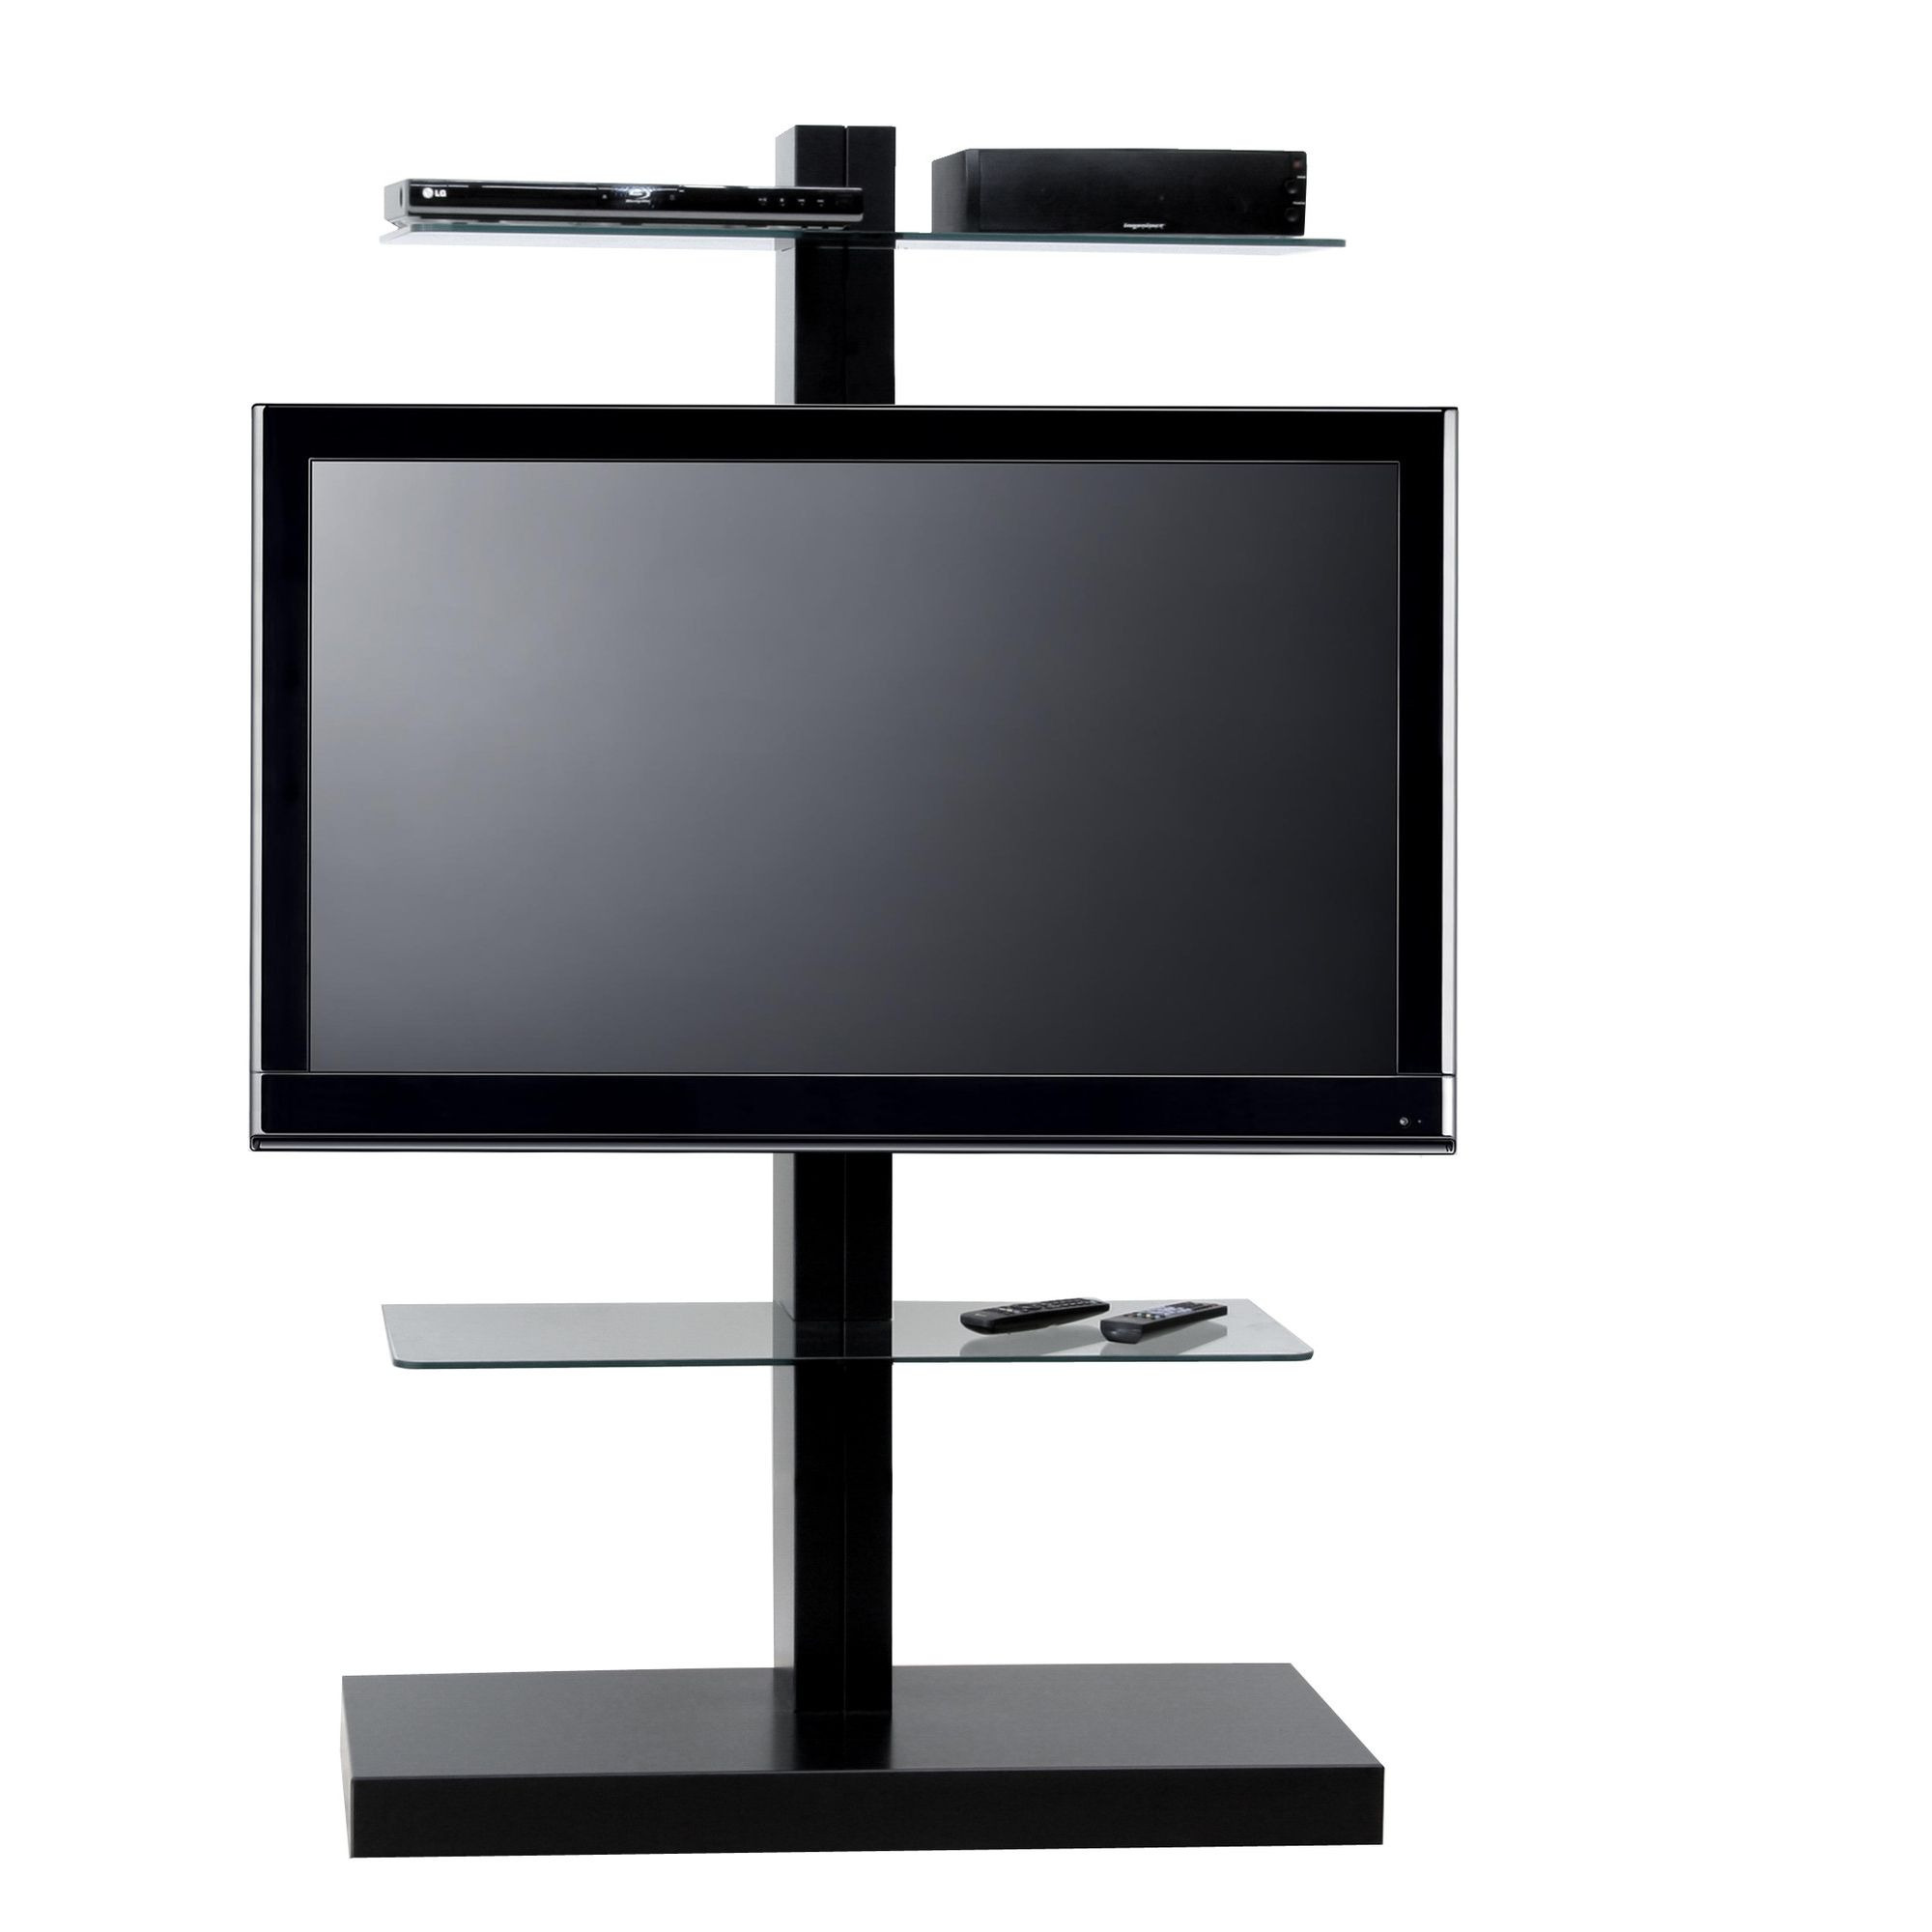 OMB Jolly Tower 2 TV Stand - Black at Tesco Direct